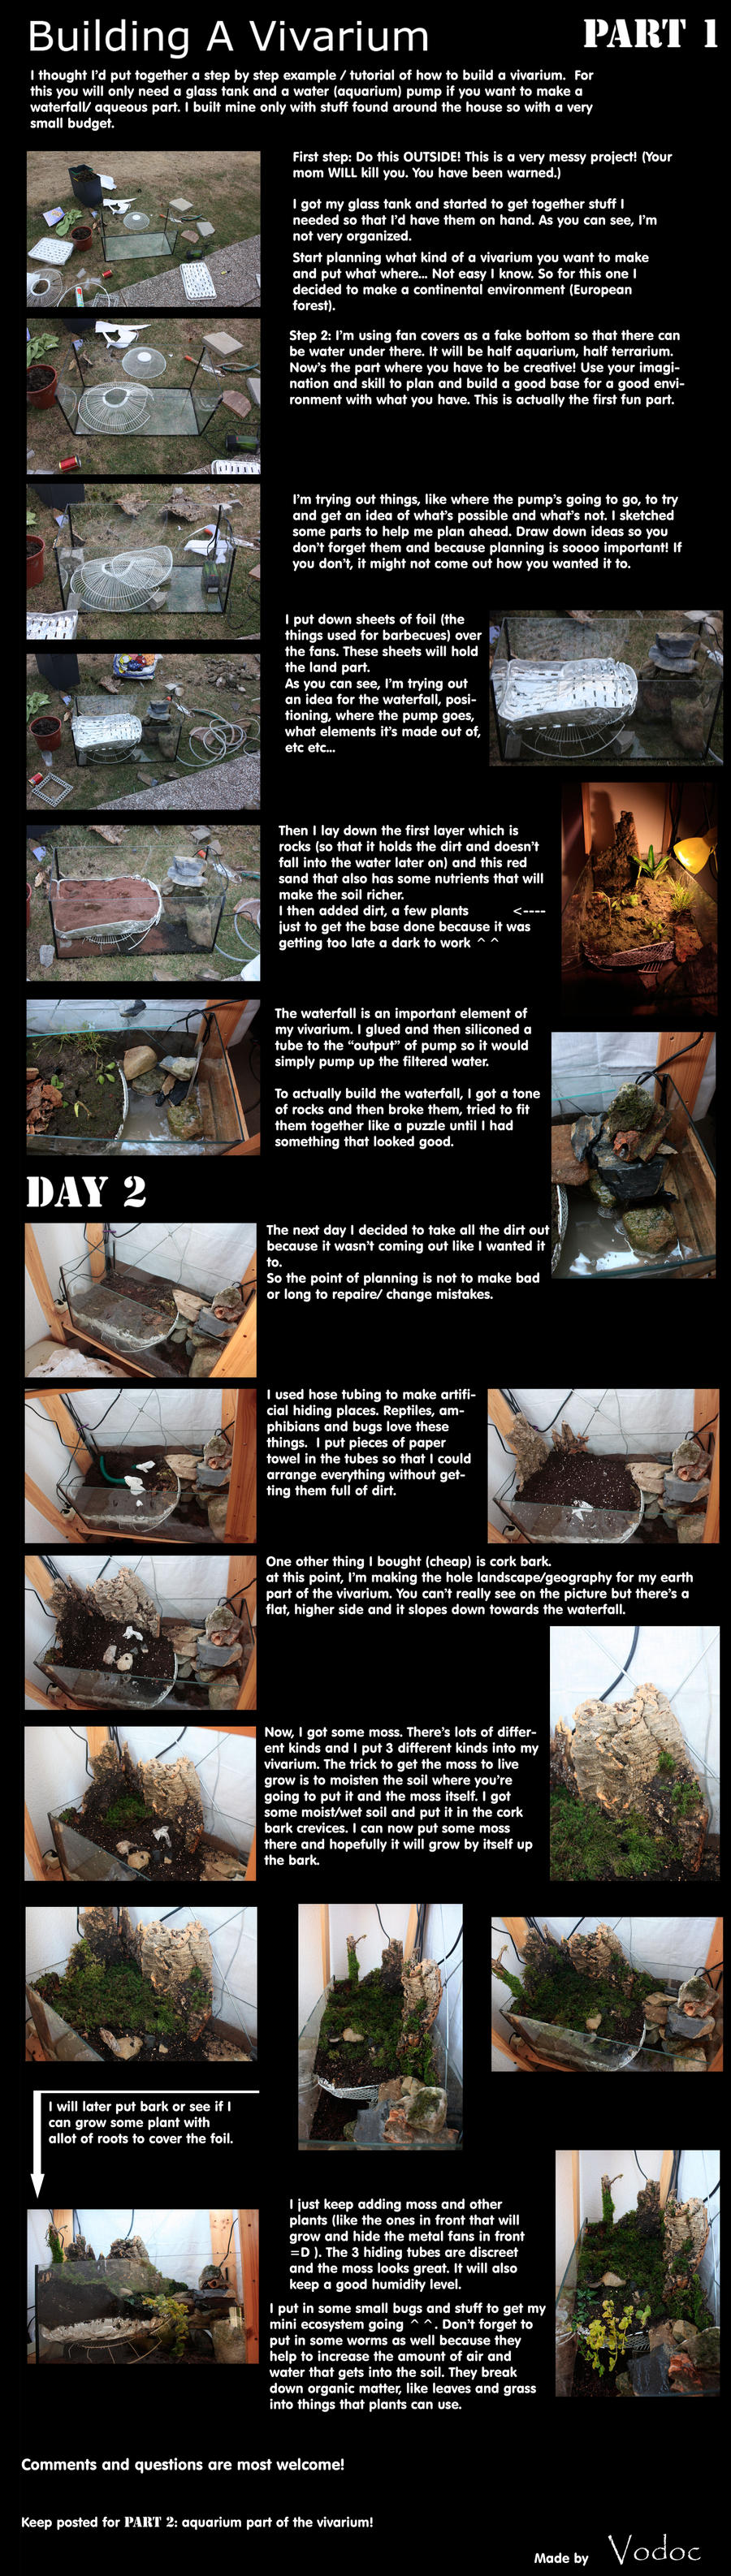 How to build a Vivarium by vodoc